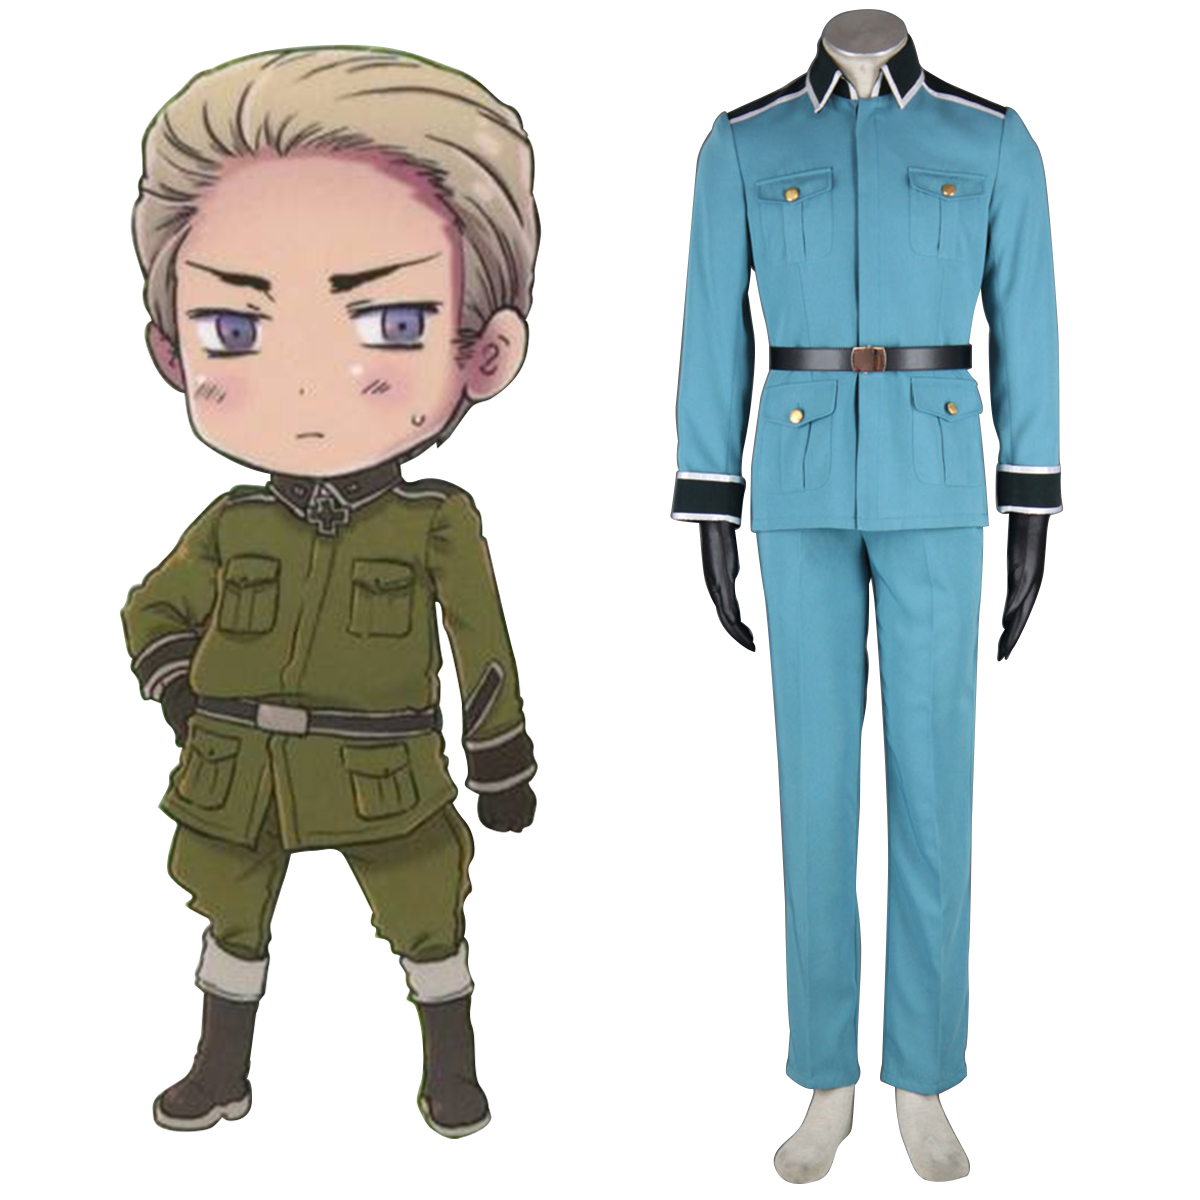 Axis Powers Hetalia Germany 1 Military Uniform Anime Cosplay Costumes Outfit